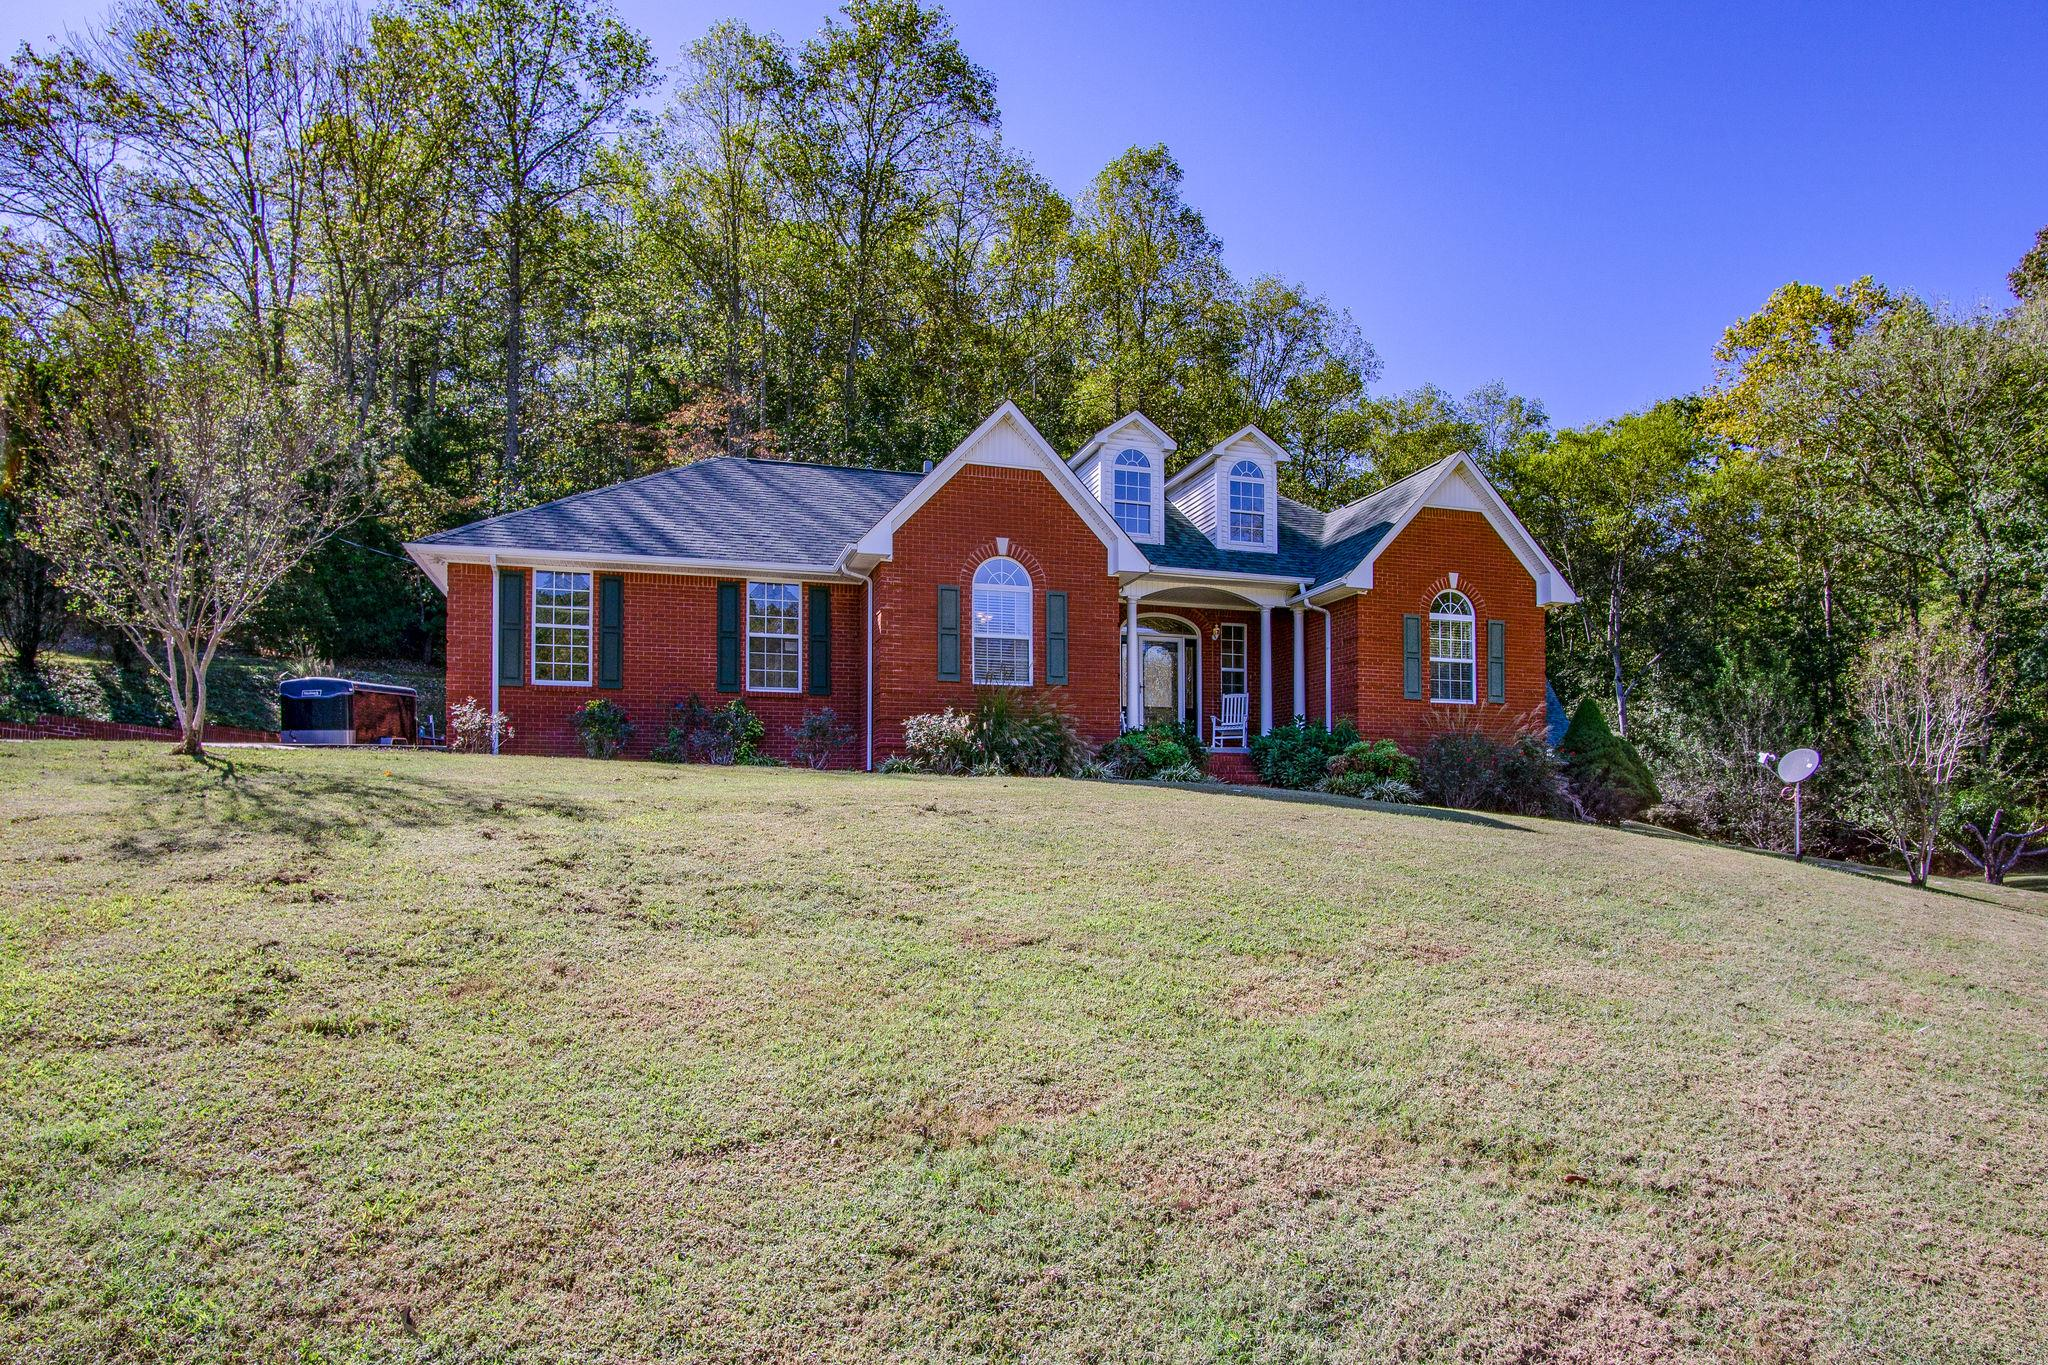 2145 Morrow Br # Rd-2145, Lynnville, TN 38472 - Lynnville, TN real estate listing